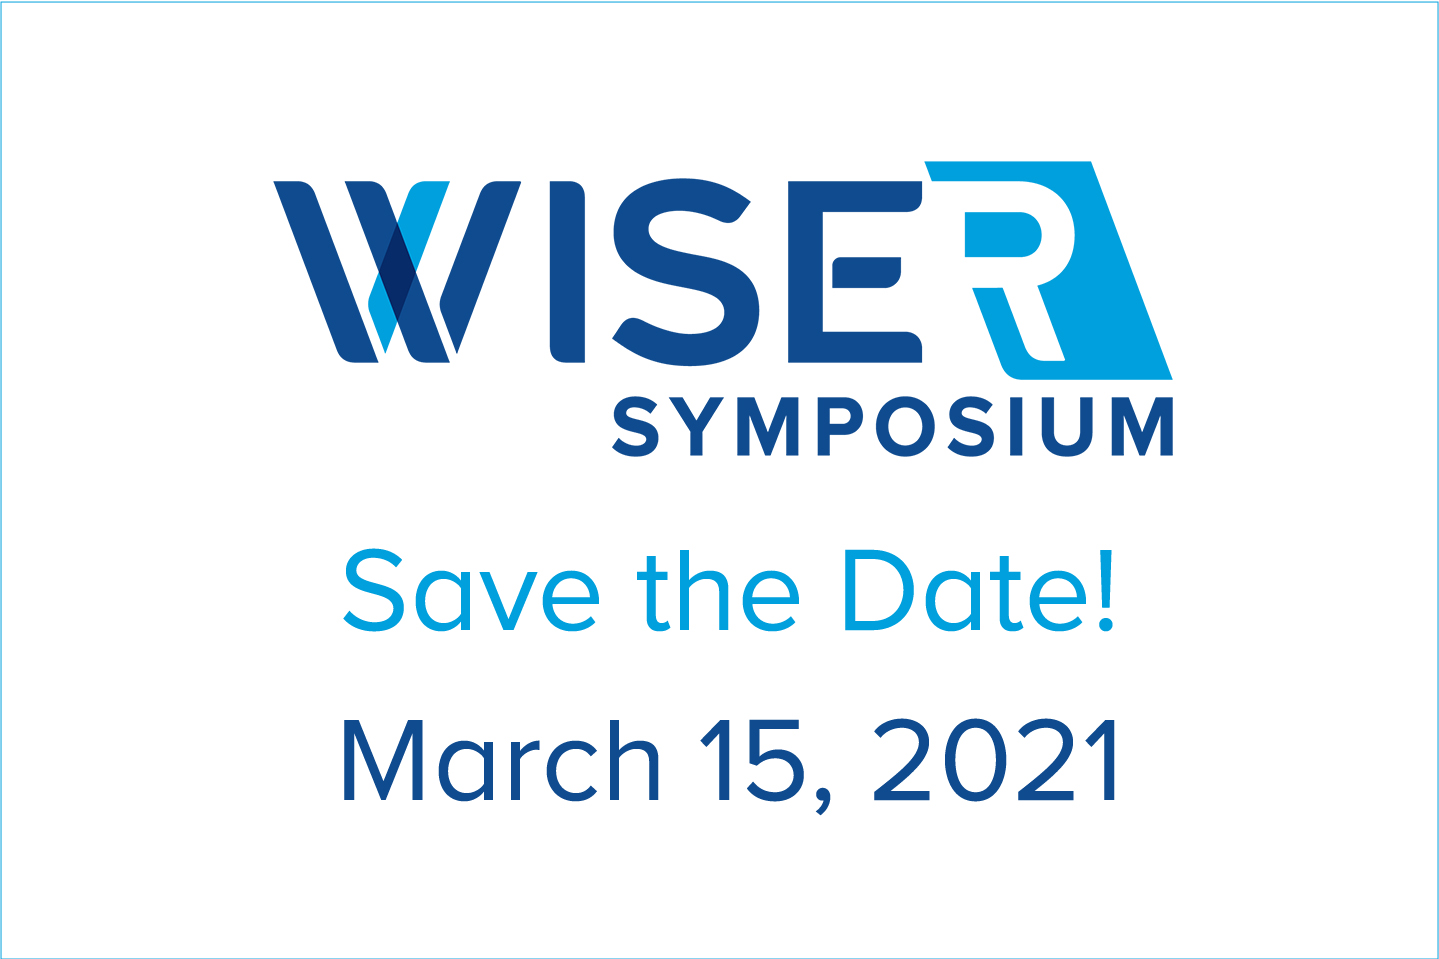 Image of WISE/R Symposium 2021